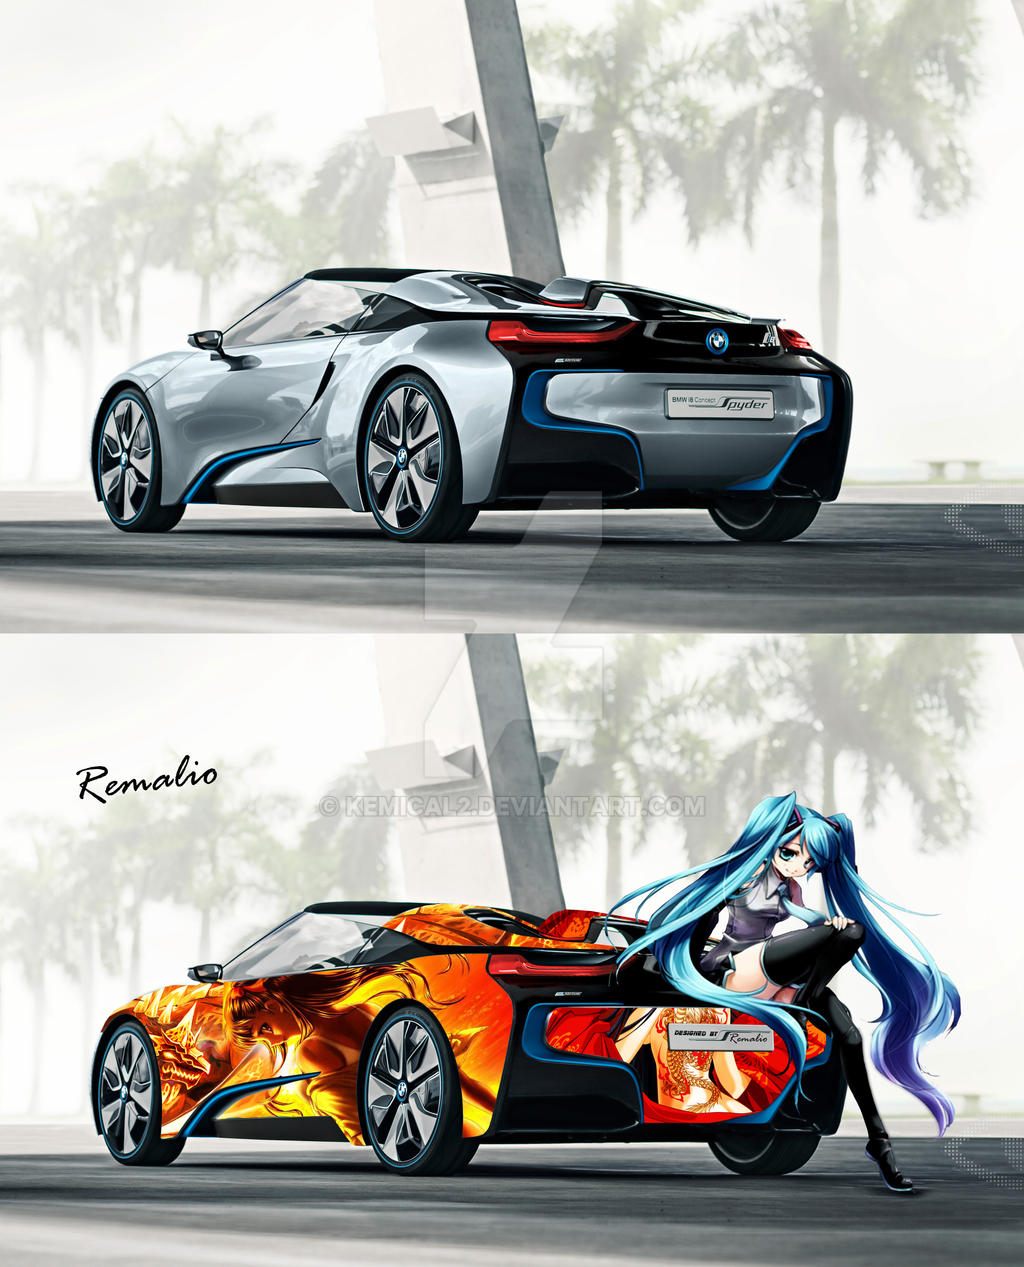 Paint job for BMW Concept Car- Anime by kemical2 on DeviantArt on custom bmw m4 coupe, custom ferrari 458 italia, custom alfa romeo 4c, custom bmw m8, custom bmw x4, custom bmw z8, custom bmw i3, custom bmw i6, custom aston martin v12 vantage, custom bmw z4, custom bmw 8 series, custom bmw m1, custom porsche macan, custom bmw z3, custom bmw x5, custom bmw m3, custom bmw x1, custom bmw m6, custom bmw 4 series, custom bmw 3 series,